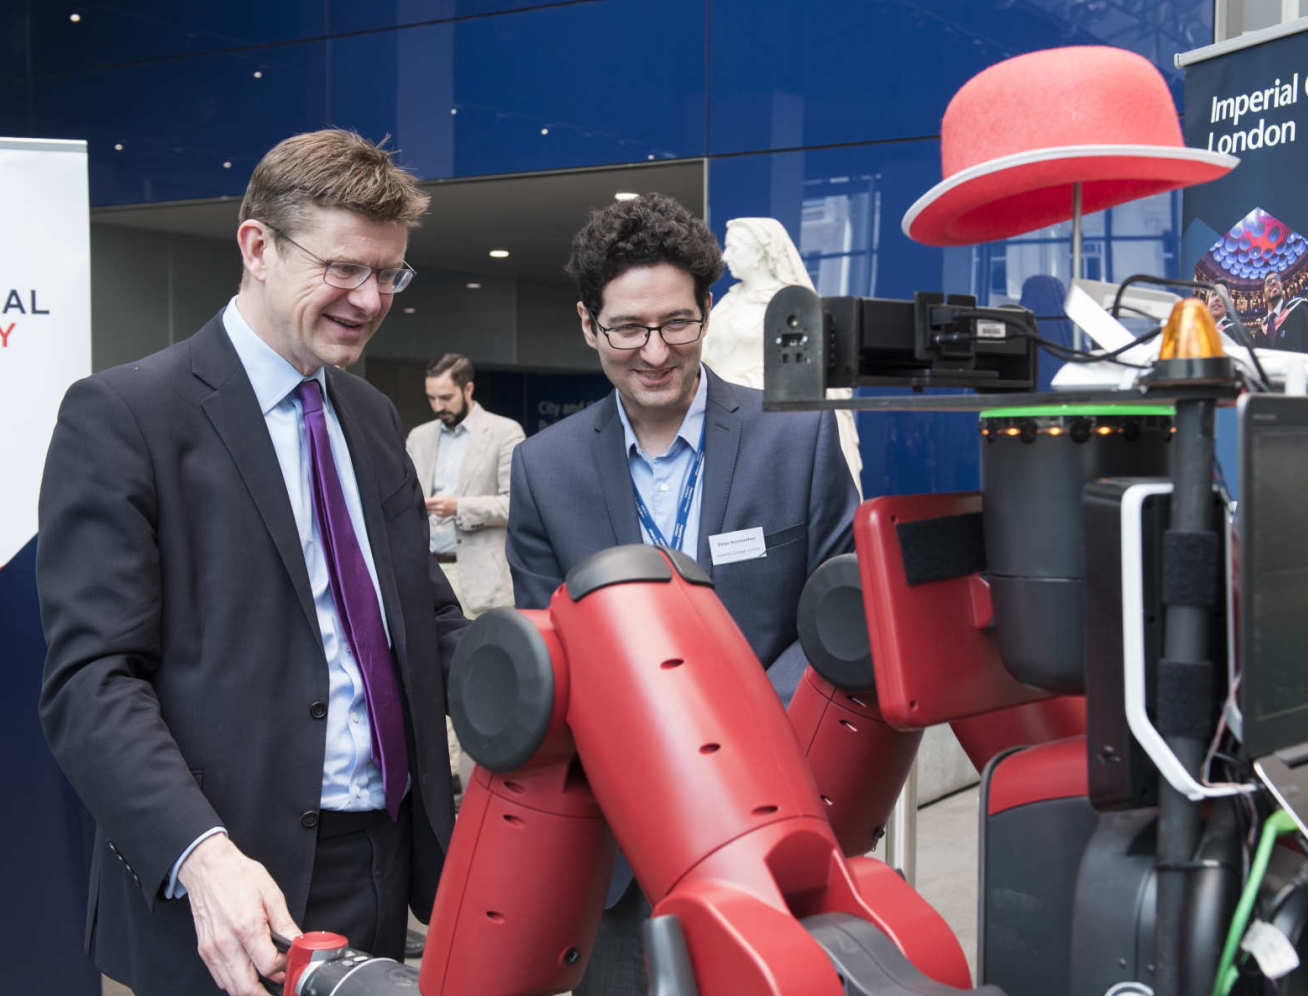 Business Secretary Greg Clark interacting with robot named Robot DE NIRO at Imperial.